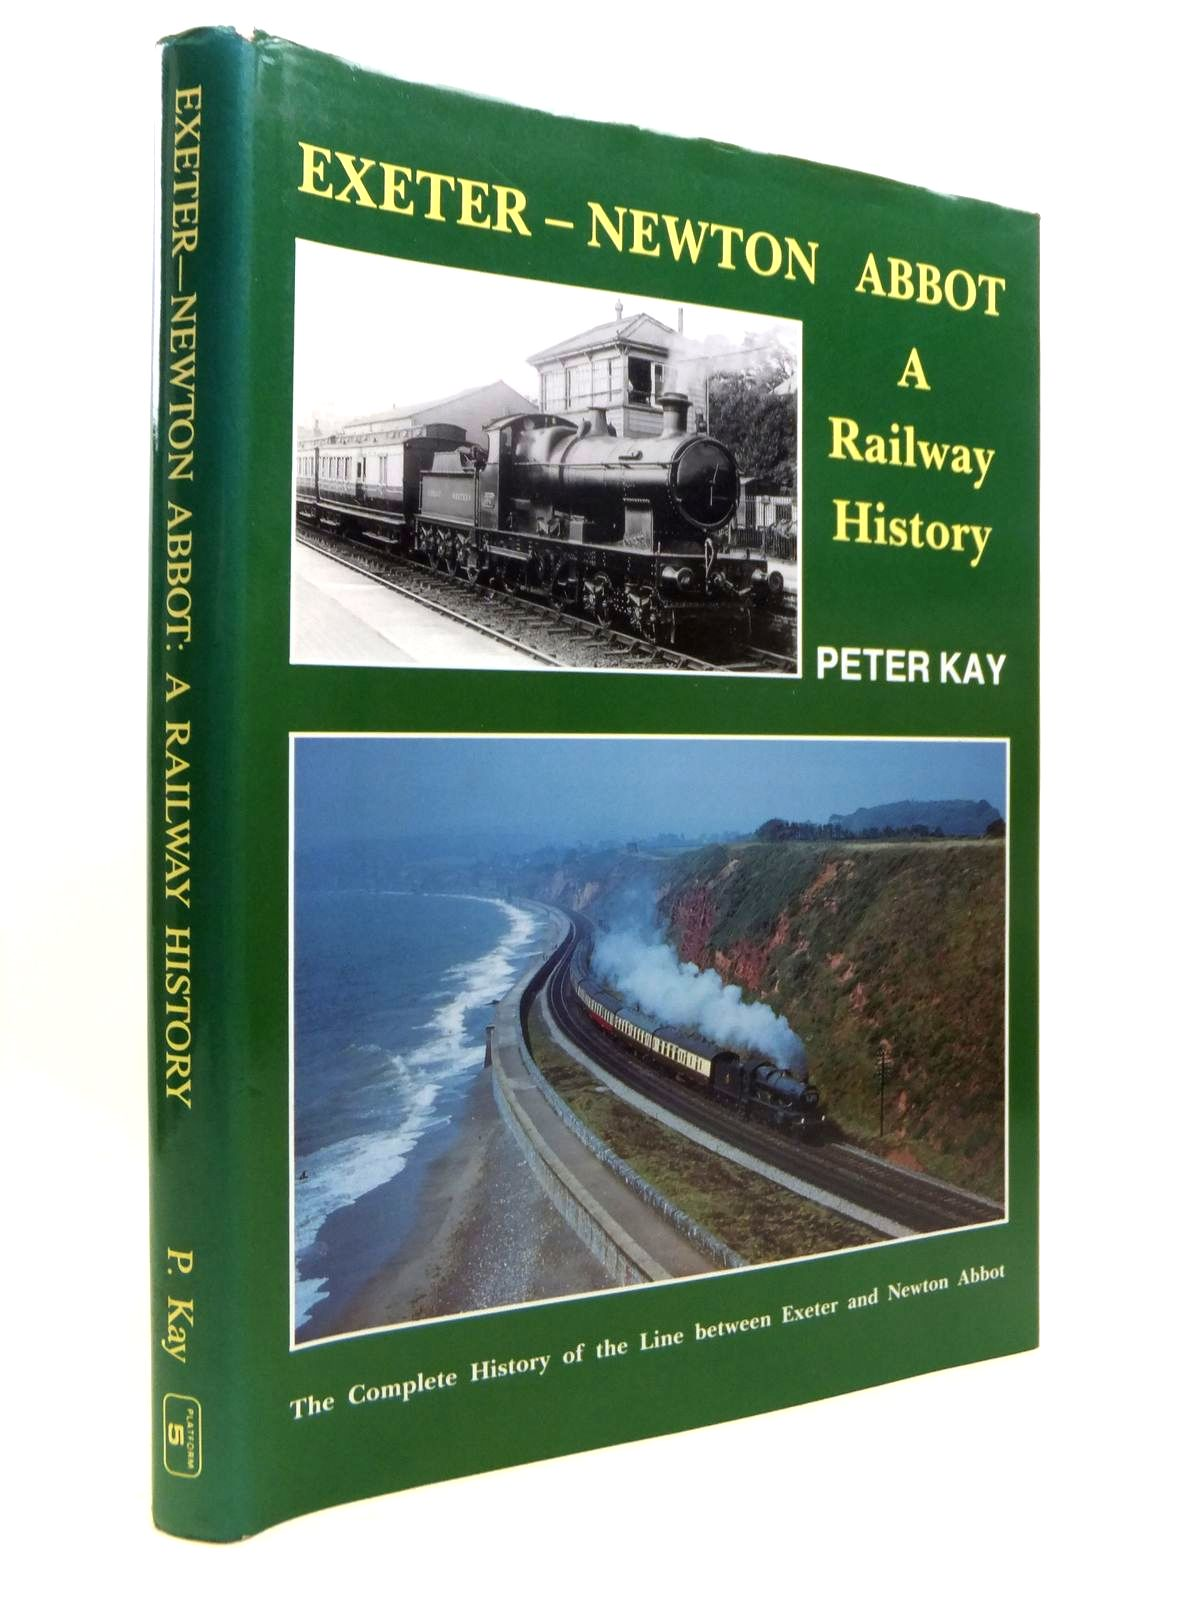 Photo of EXETER - NEWTON ABBOT A RAILWAY HISTORY written by Kay, Peter published by Platform 5 (STOCK CODE: 1812227)  for sale by Stella & Rose's Books